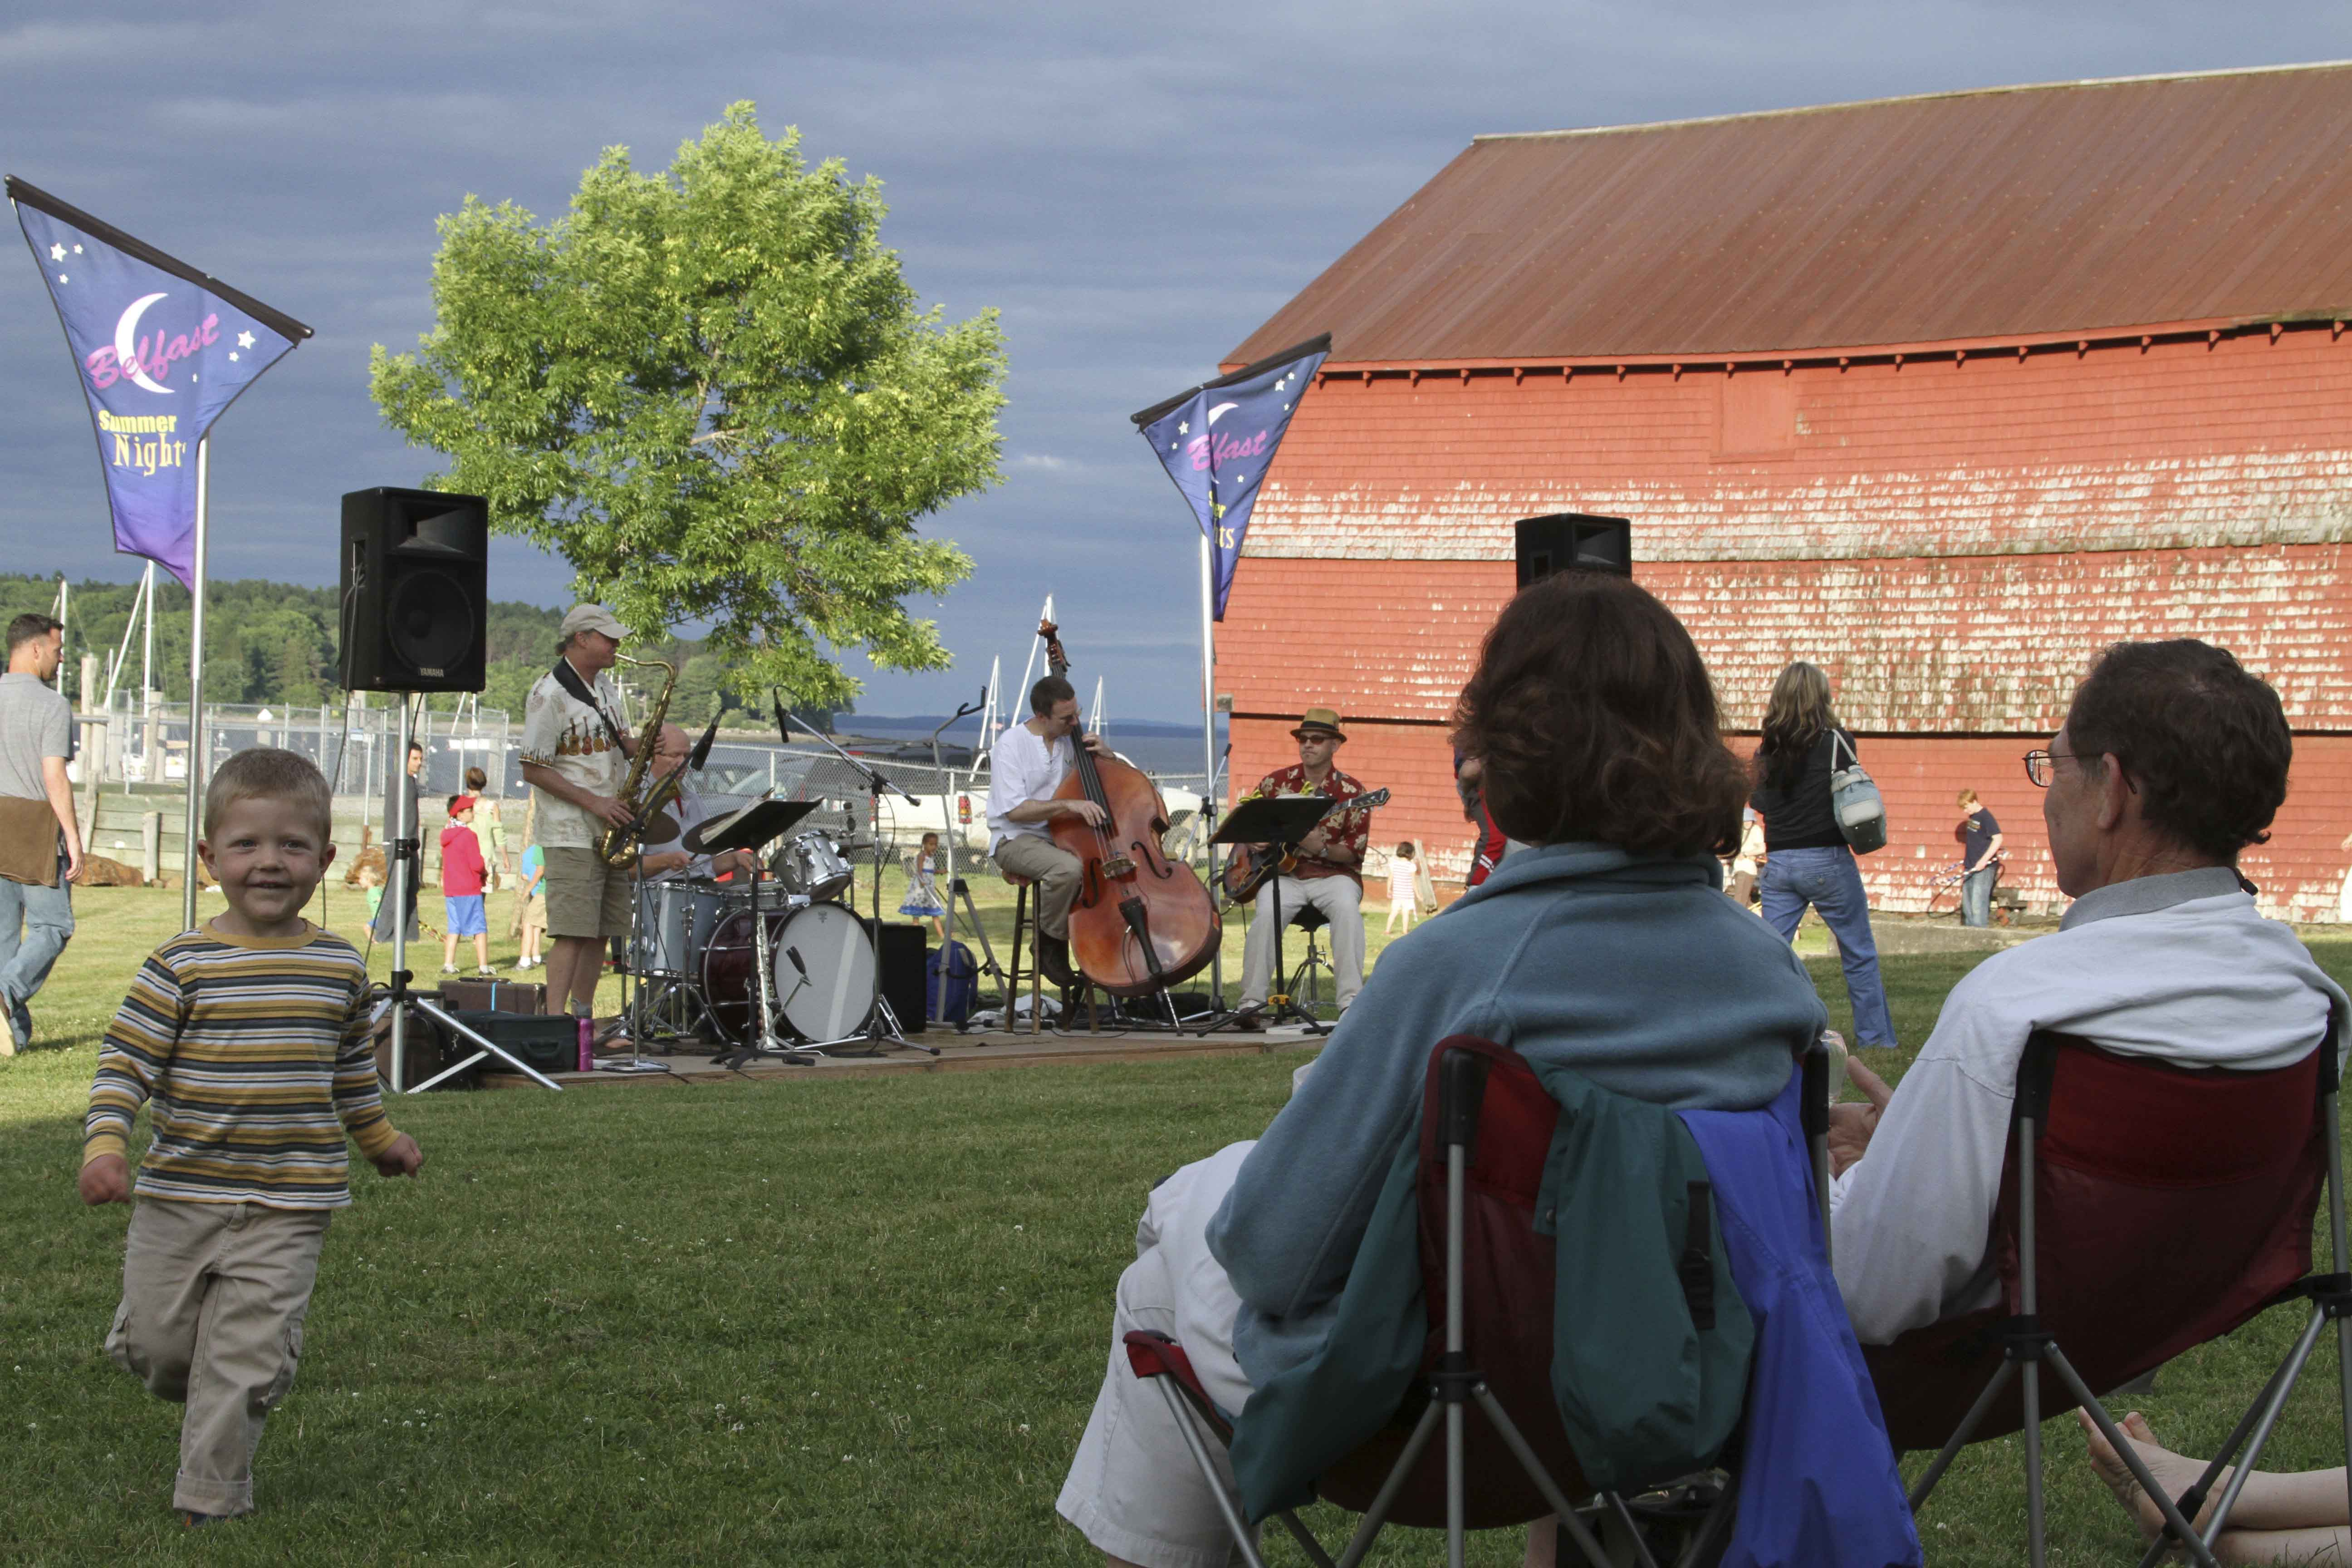 Listeners enjoy the music of the Bel Isle Trio, consisting of Bruce Boege on saxaphone, Dave Clark on guitar, Eric Davis on bass and Jeff Densmore on drums. The trio performed on June 30 at Heritage Park in Belfast as part of the city's Belfast Summer Nights series.